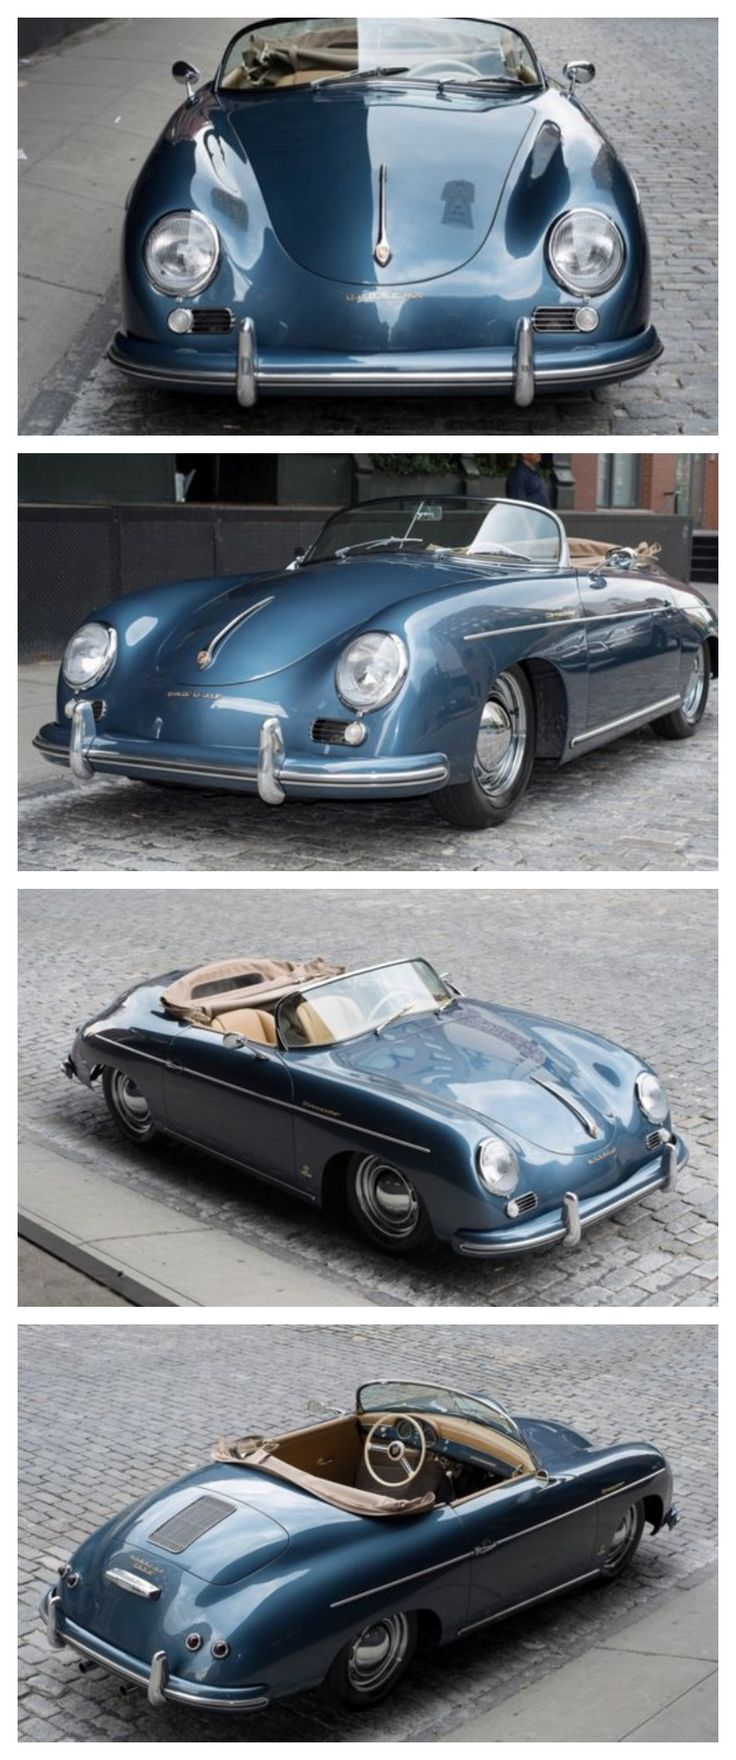 Simply Stunning! Porsche 356 Speedster #AutoAwesome This dream car could be yours if you just follow these steps